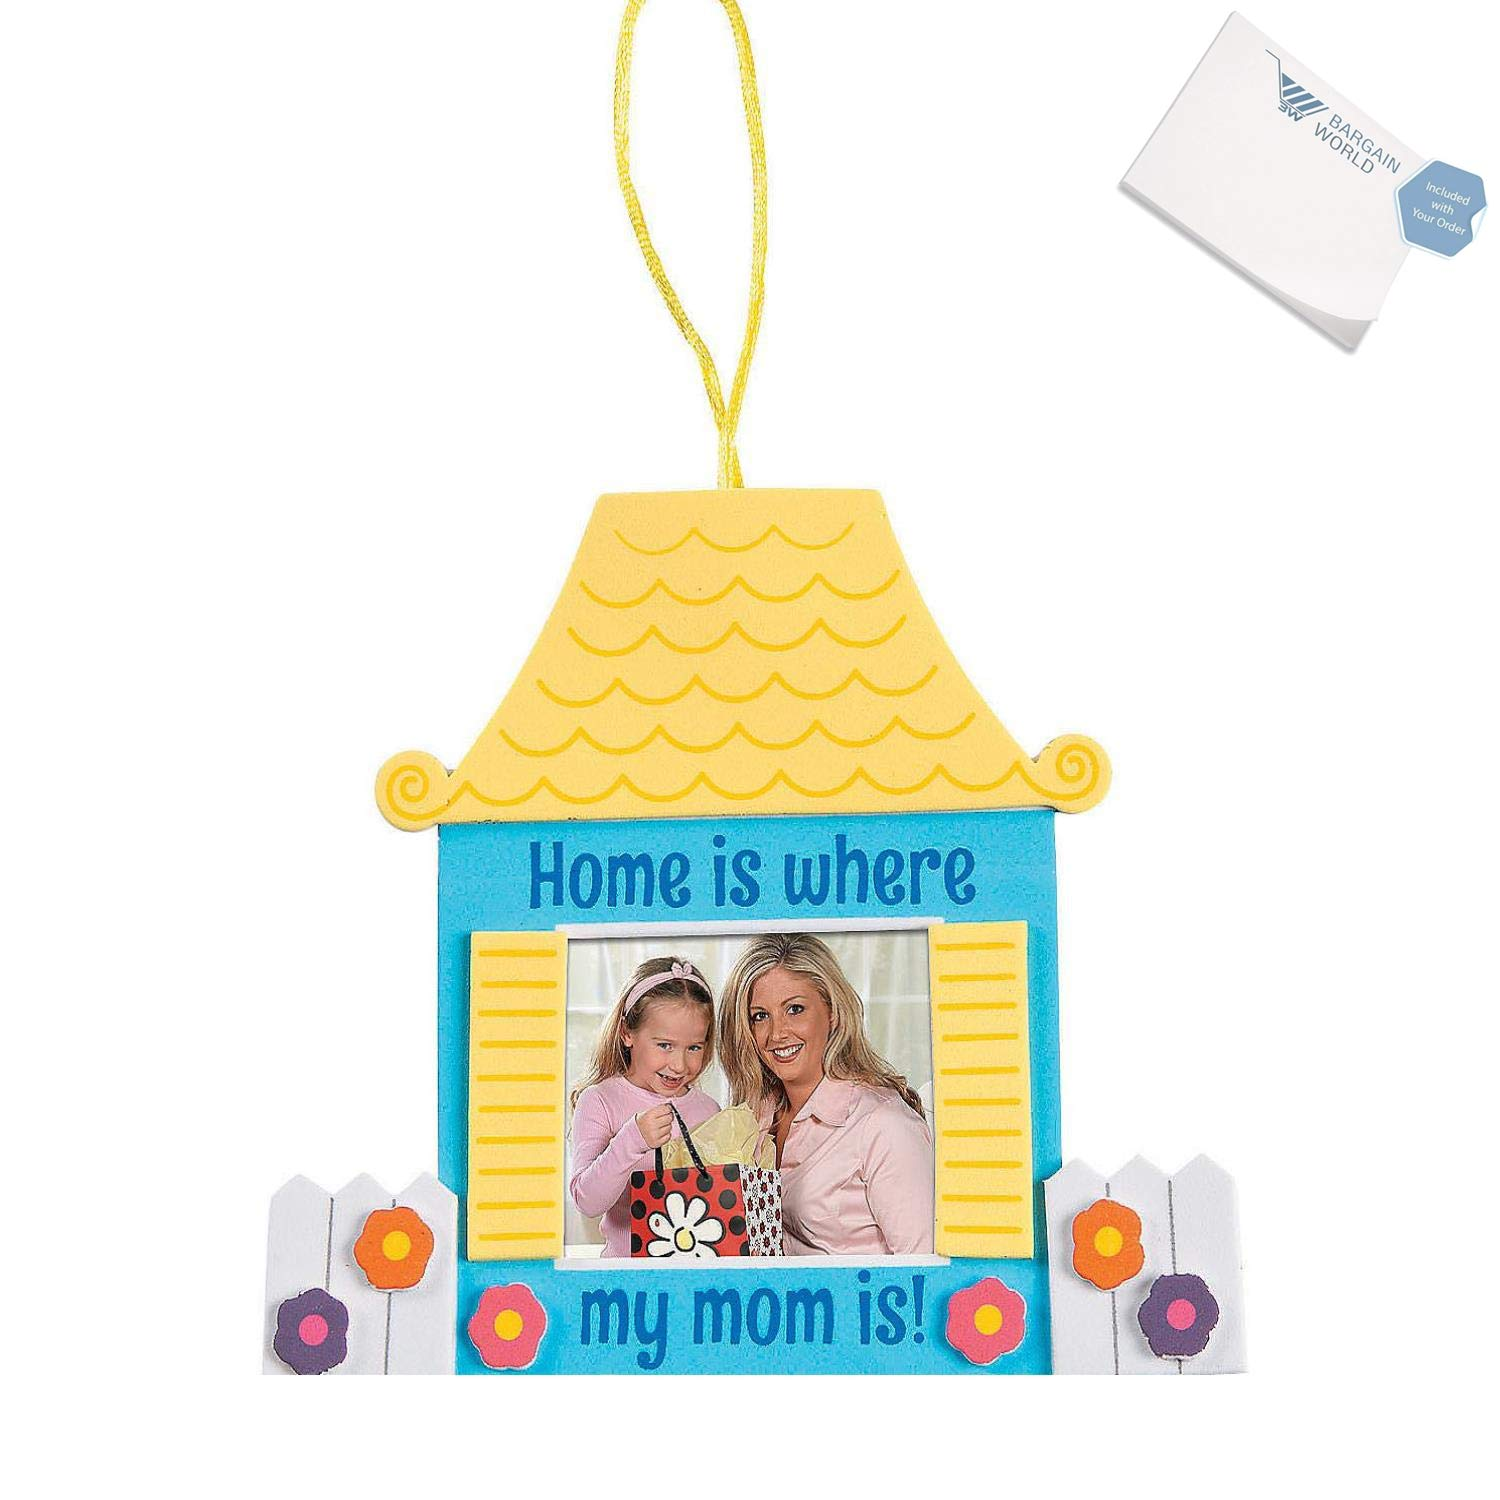 Bargain World Home Is Where My Mom Is Picture Frame Craft Kit (With Sticky Notes) by Bargain World (Image #1)